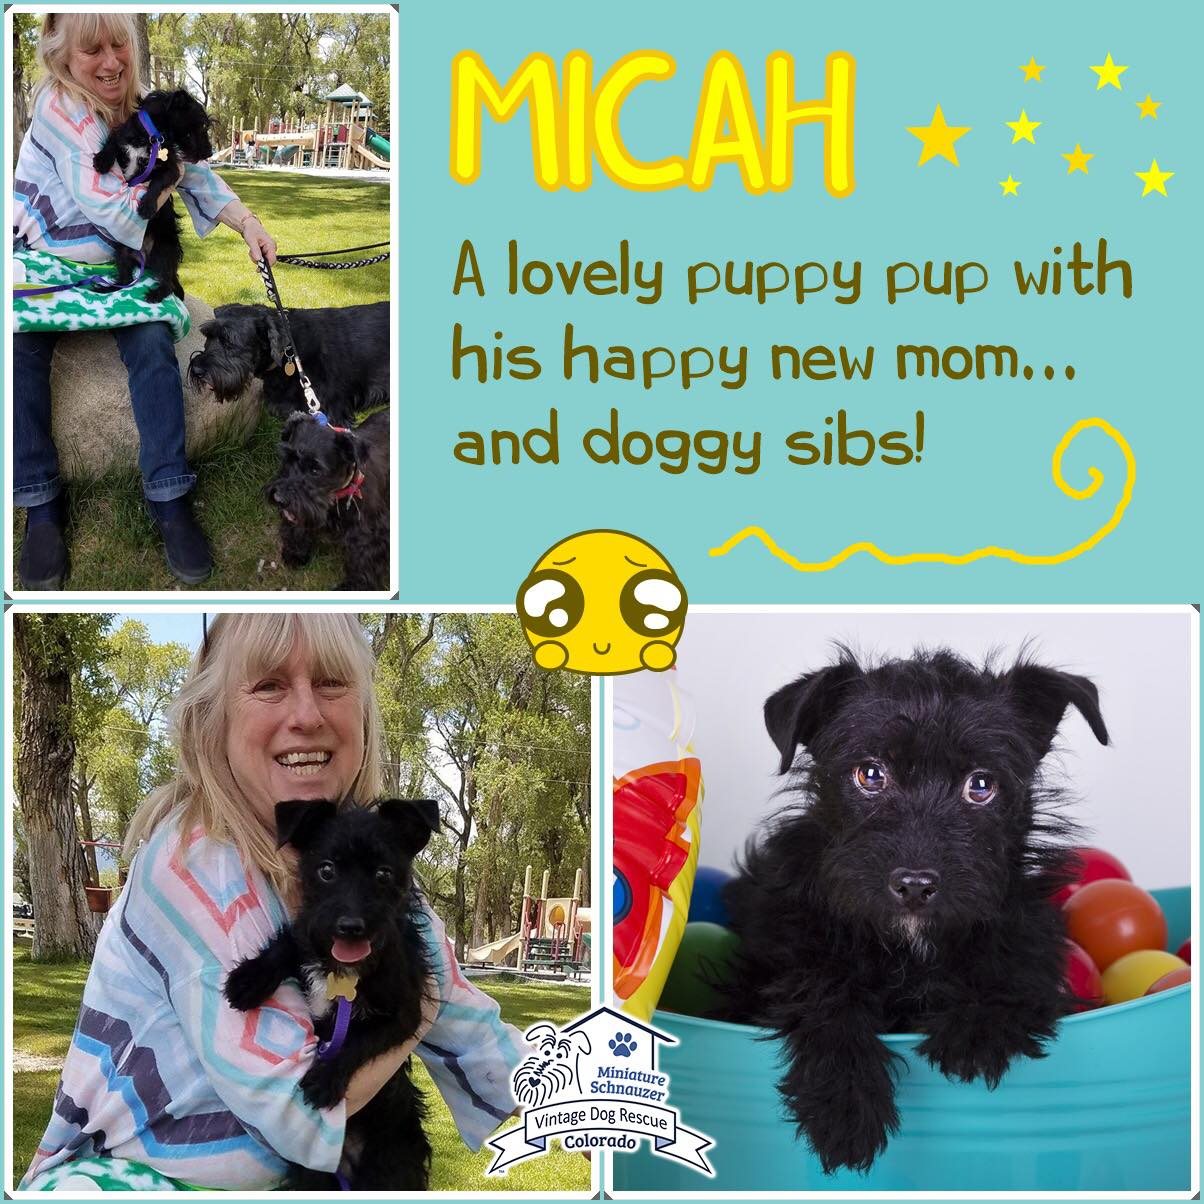 Micah was adopted!